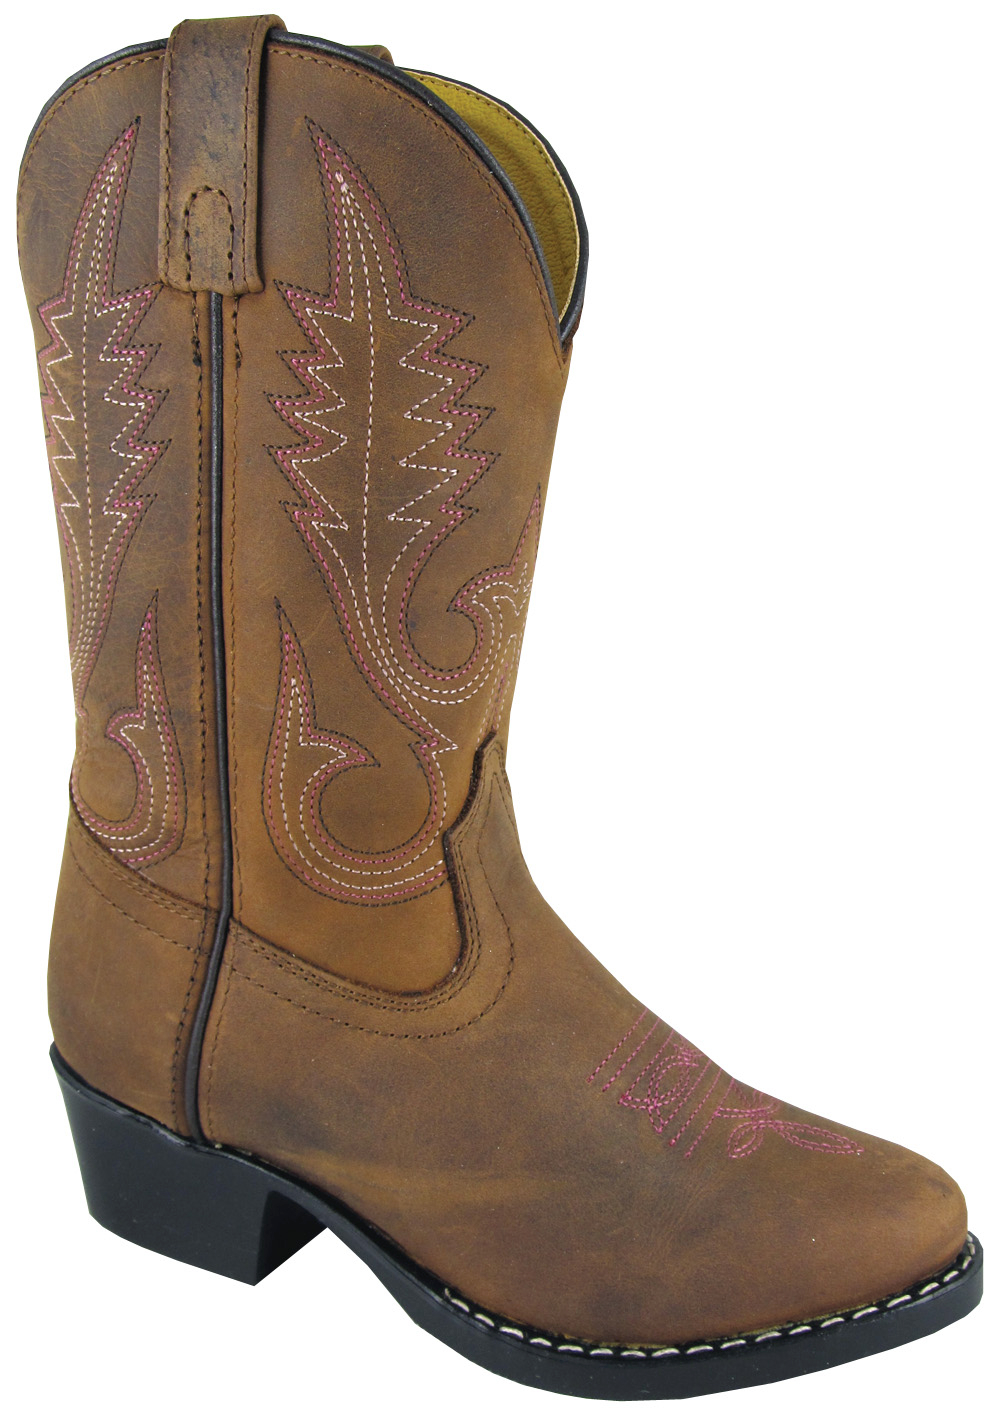 Childrens Cowgirl Boots yaPDj7Ch